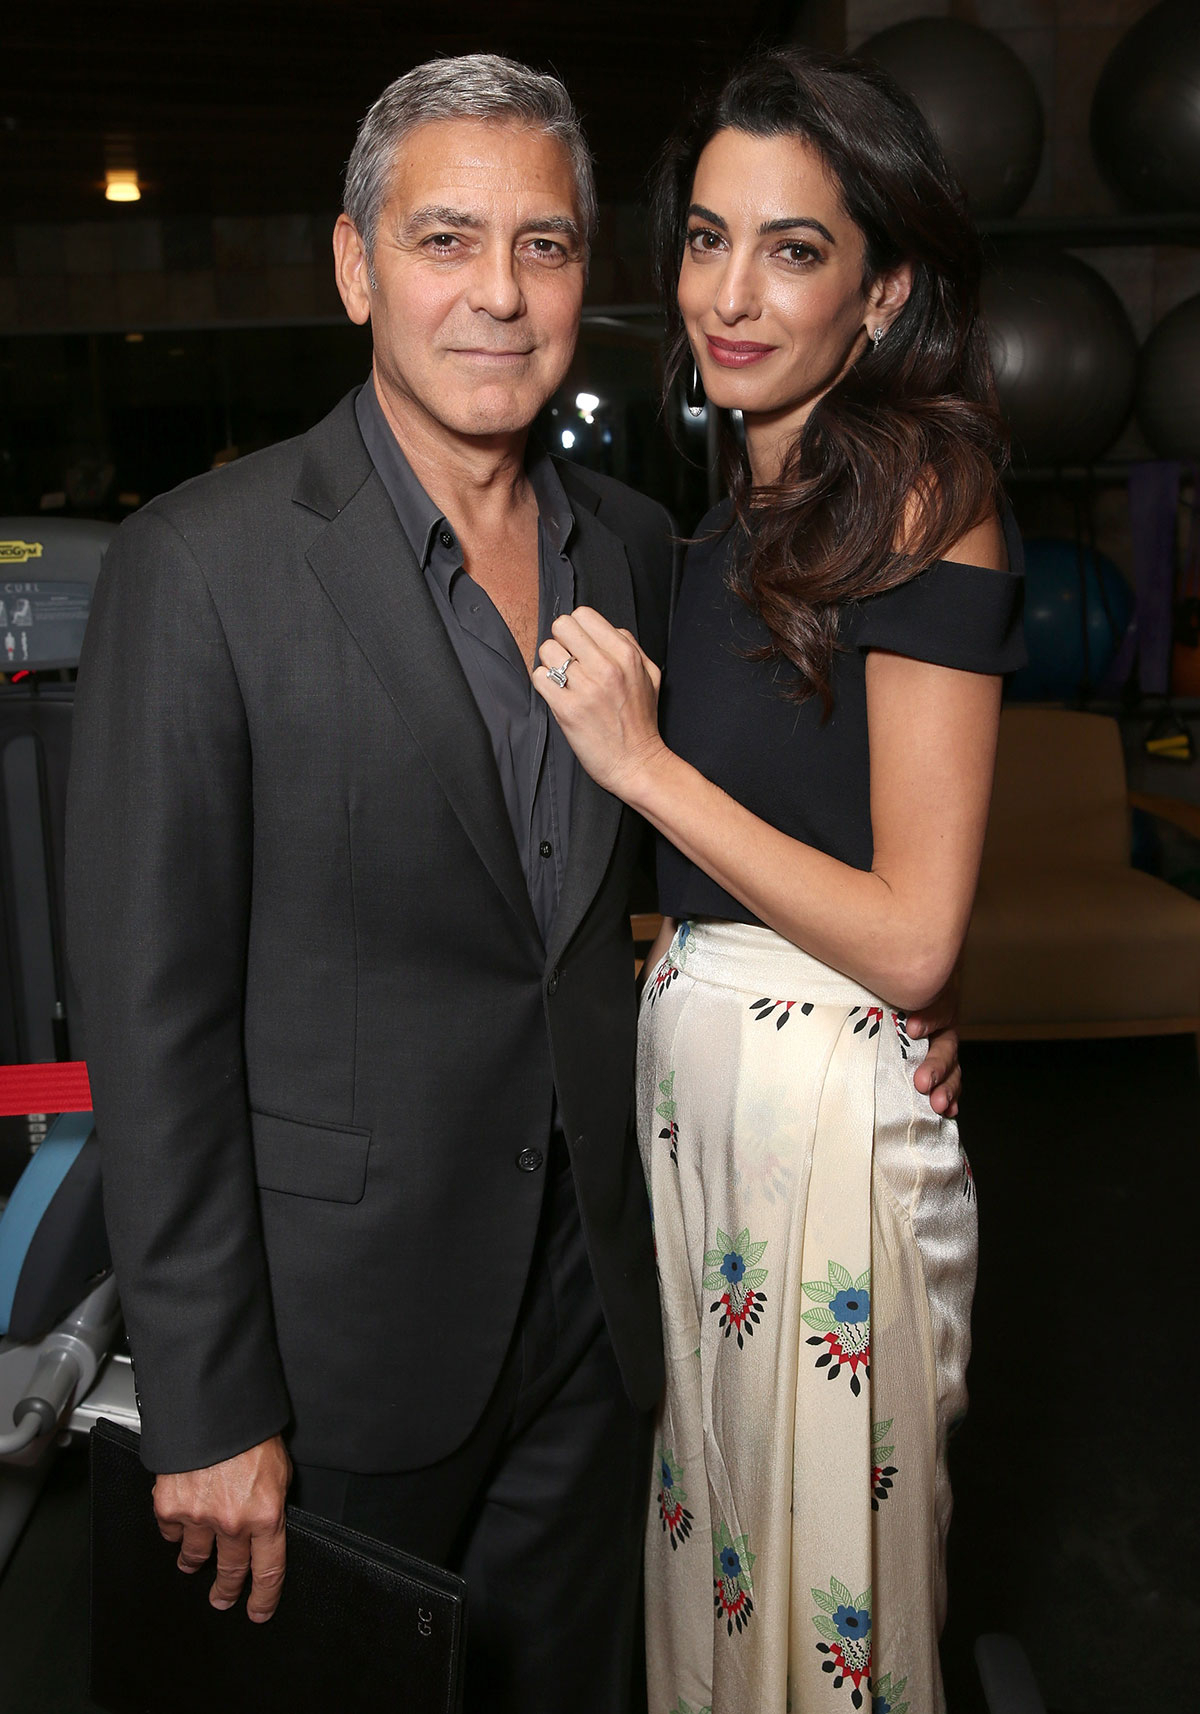 George Clooney and Amal recently revealed they are expecting twins